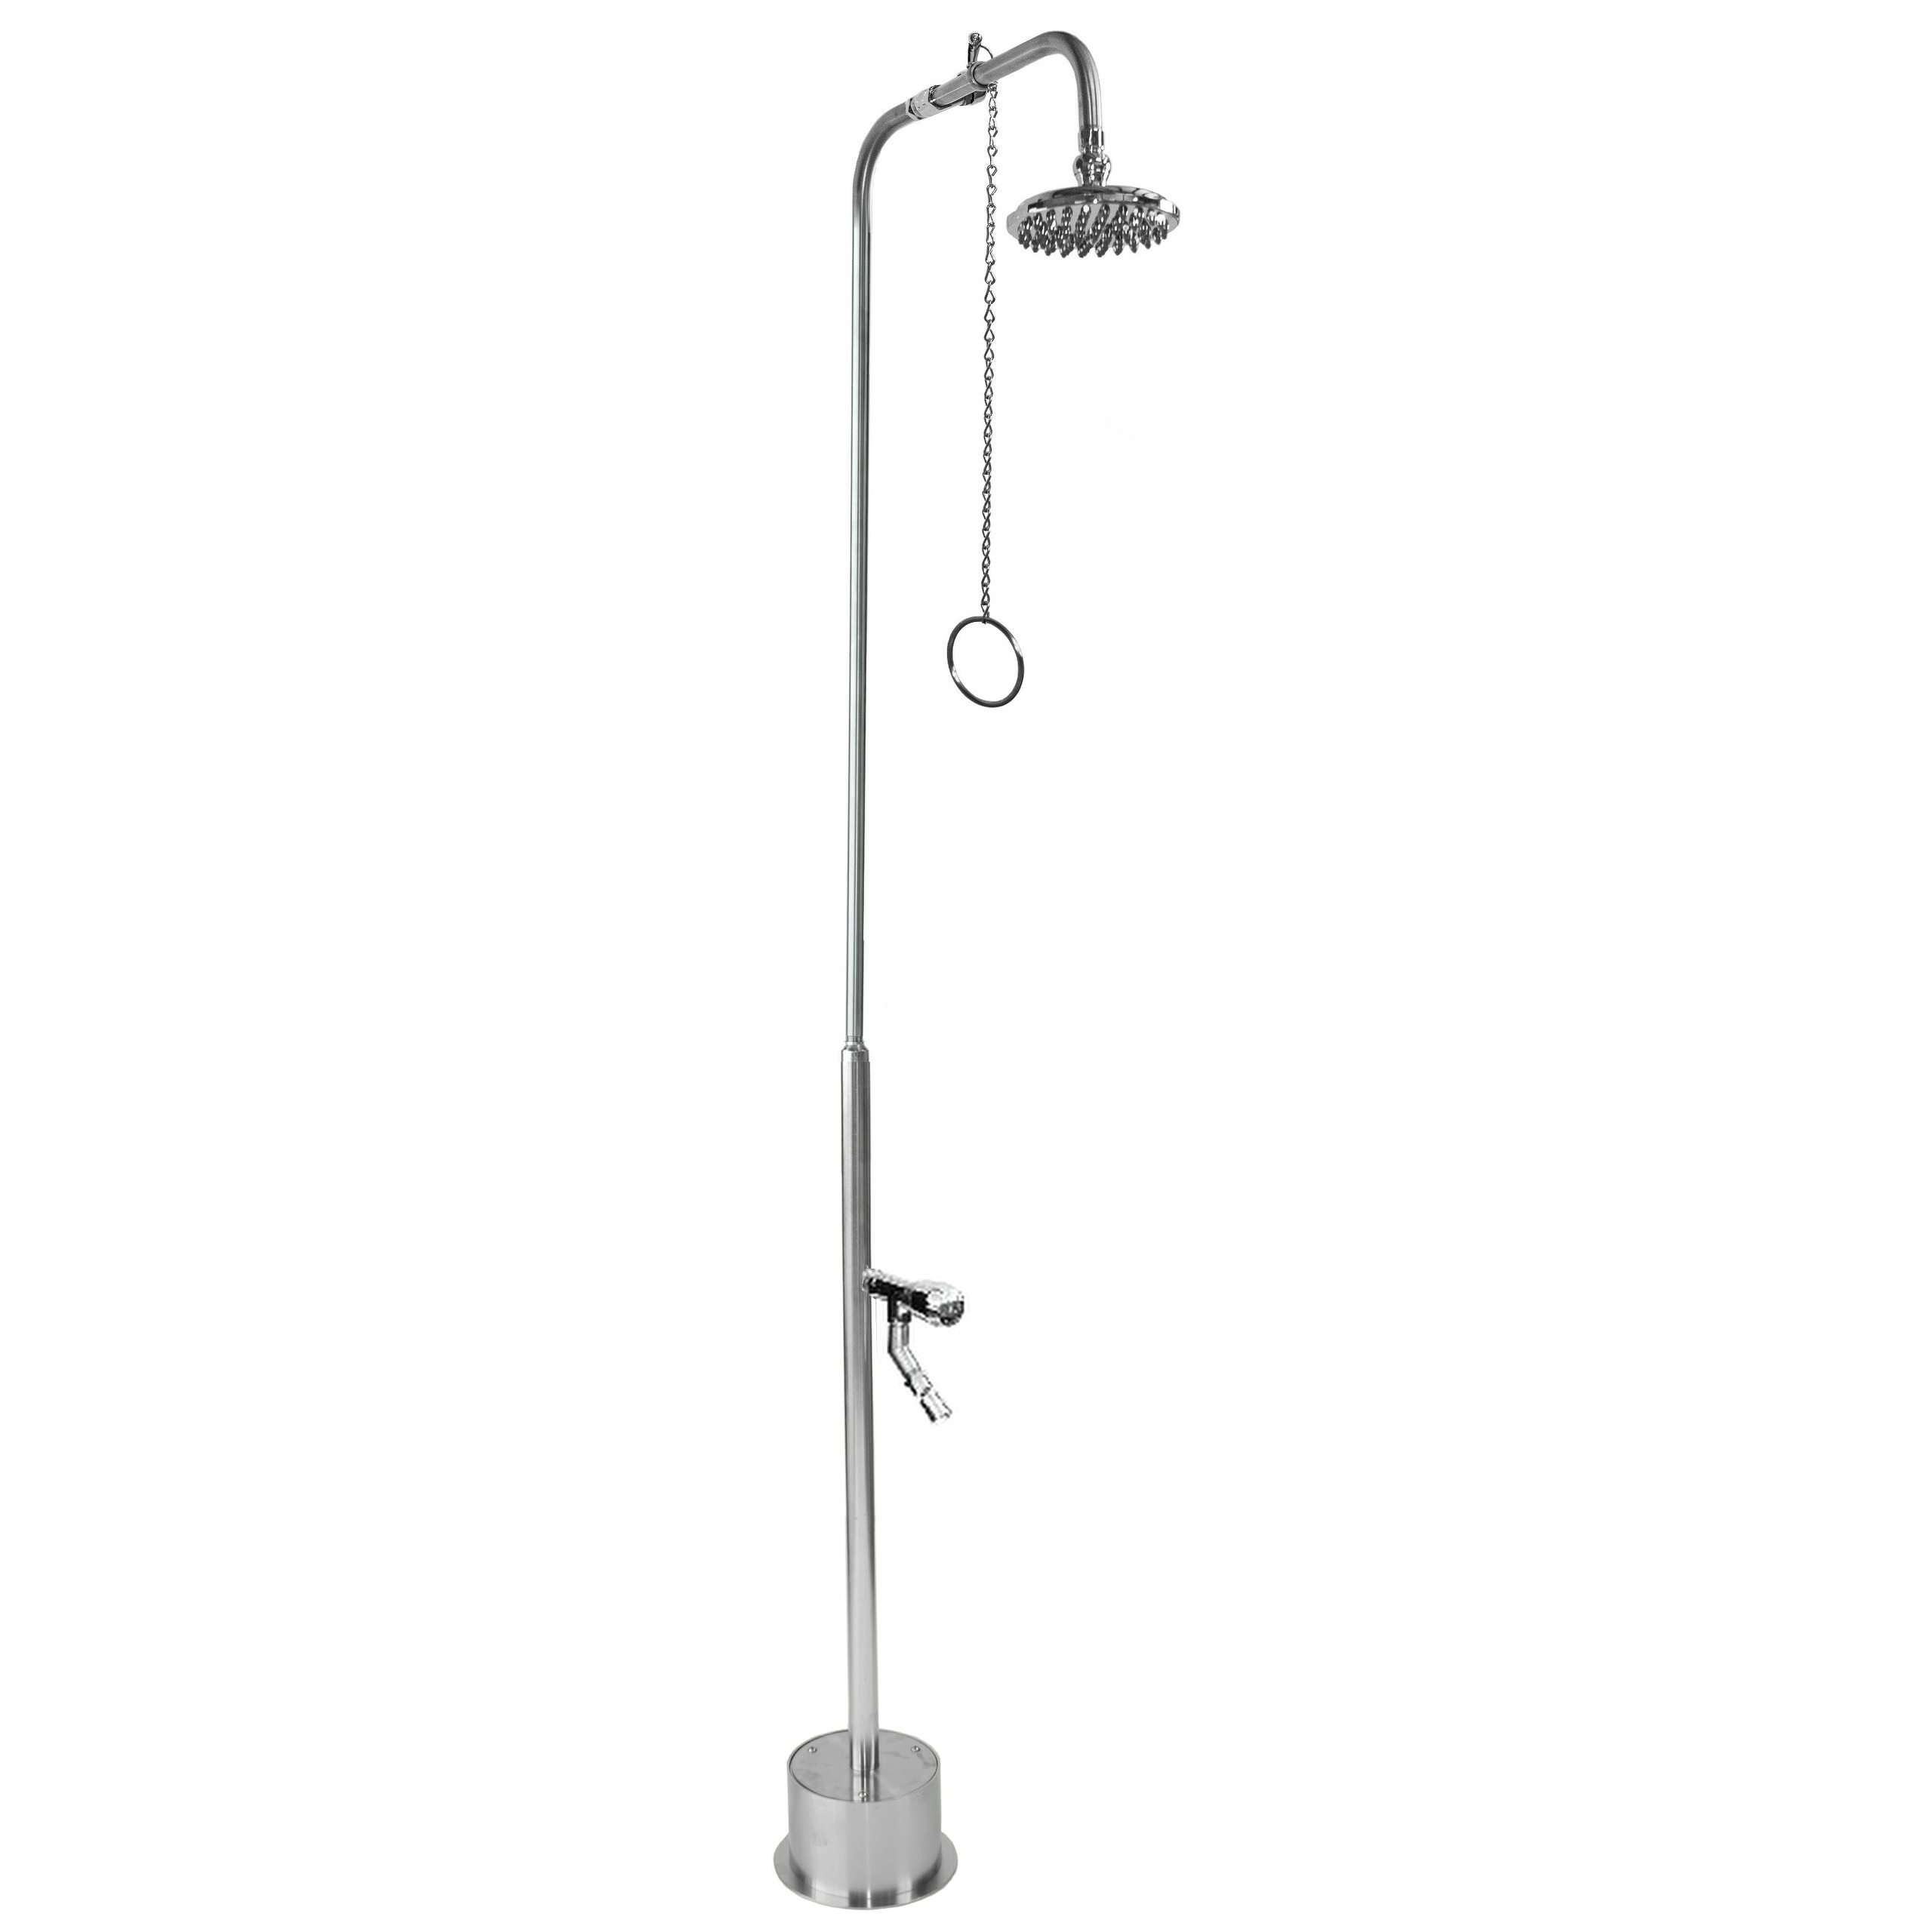 Outdoor Shower Company BS-1200-PCV-ADA Free Standing Single Supply Shower